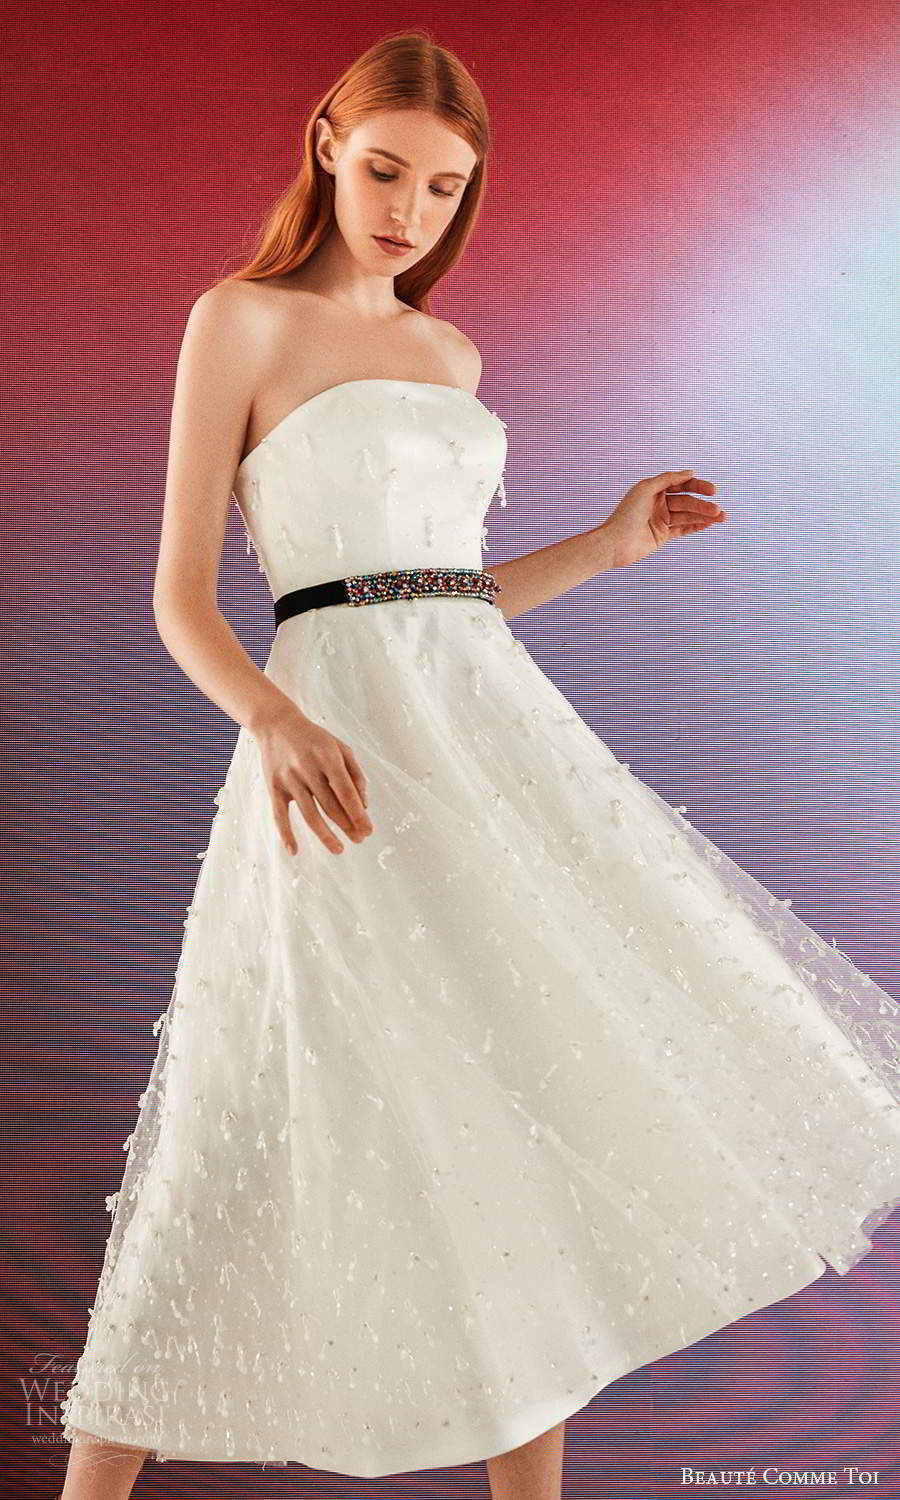 beaute comme toi fall 2021 bridal strapless straight across neckline embellished tea length a line wedding dress (8) sv